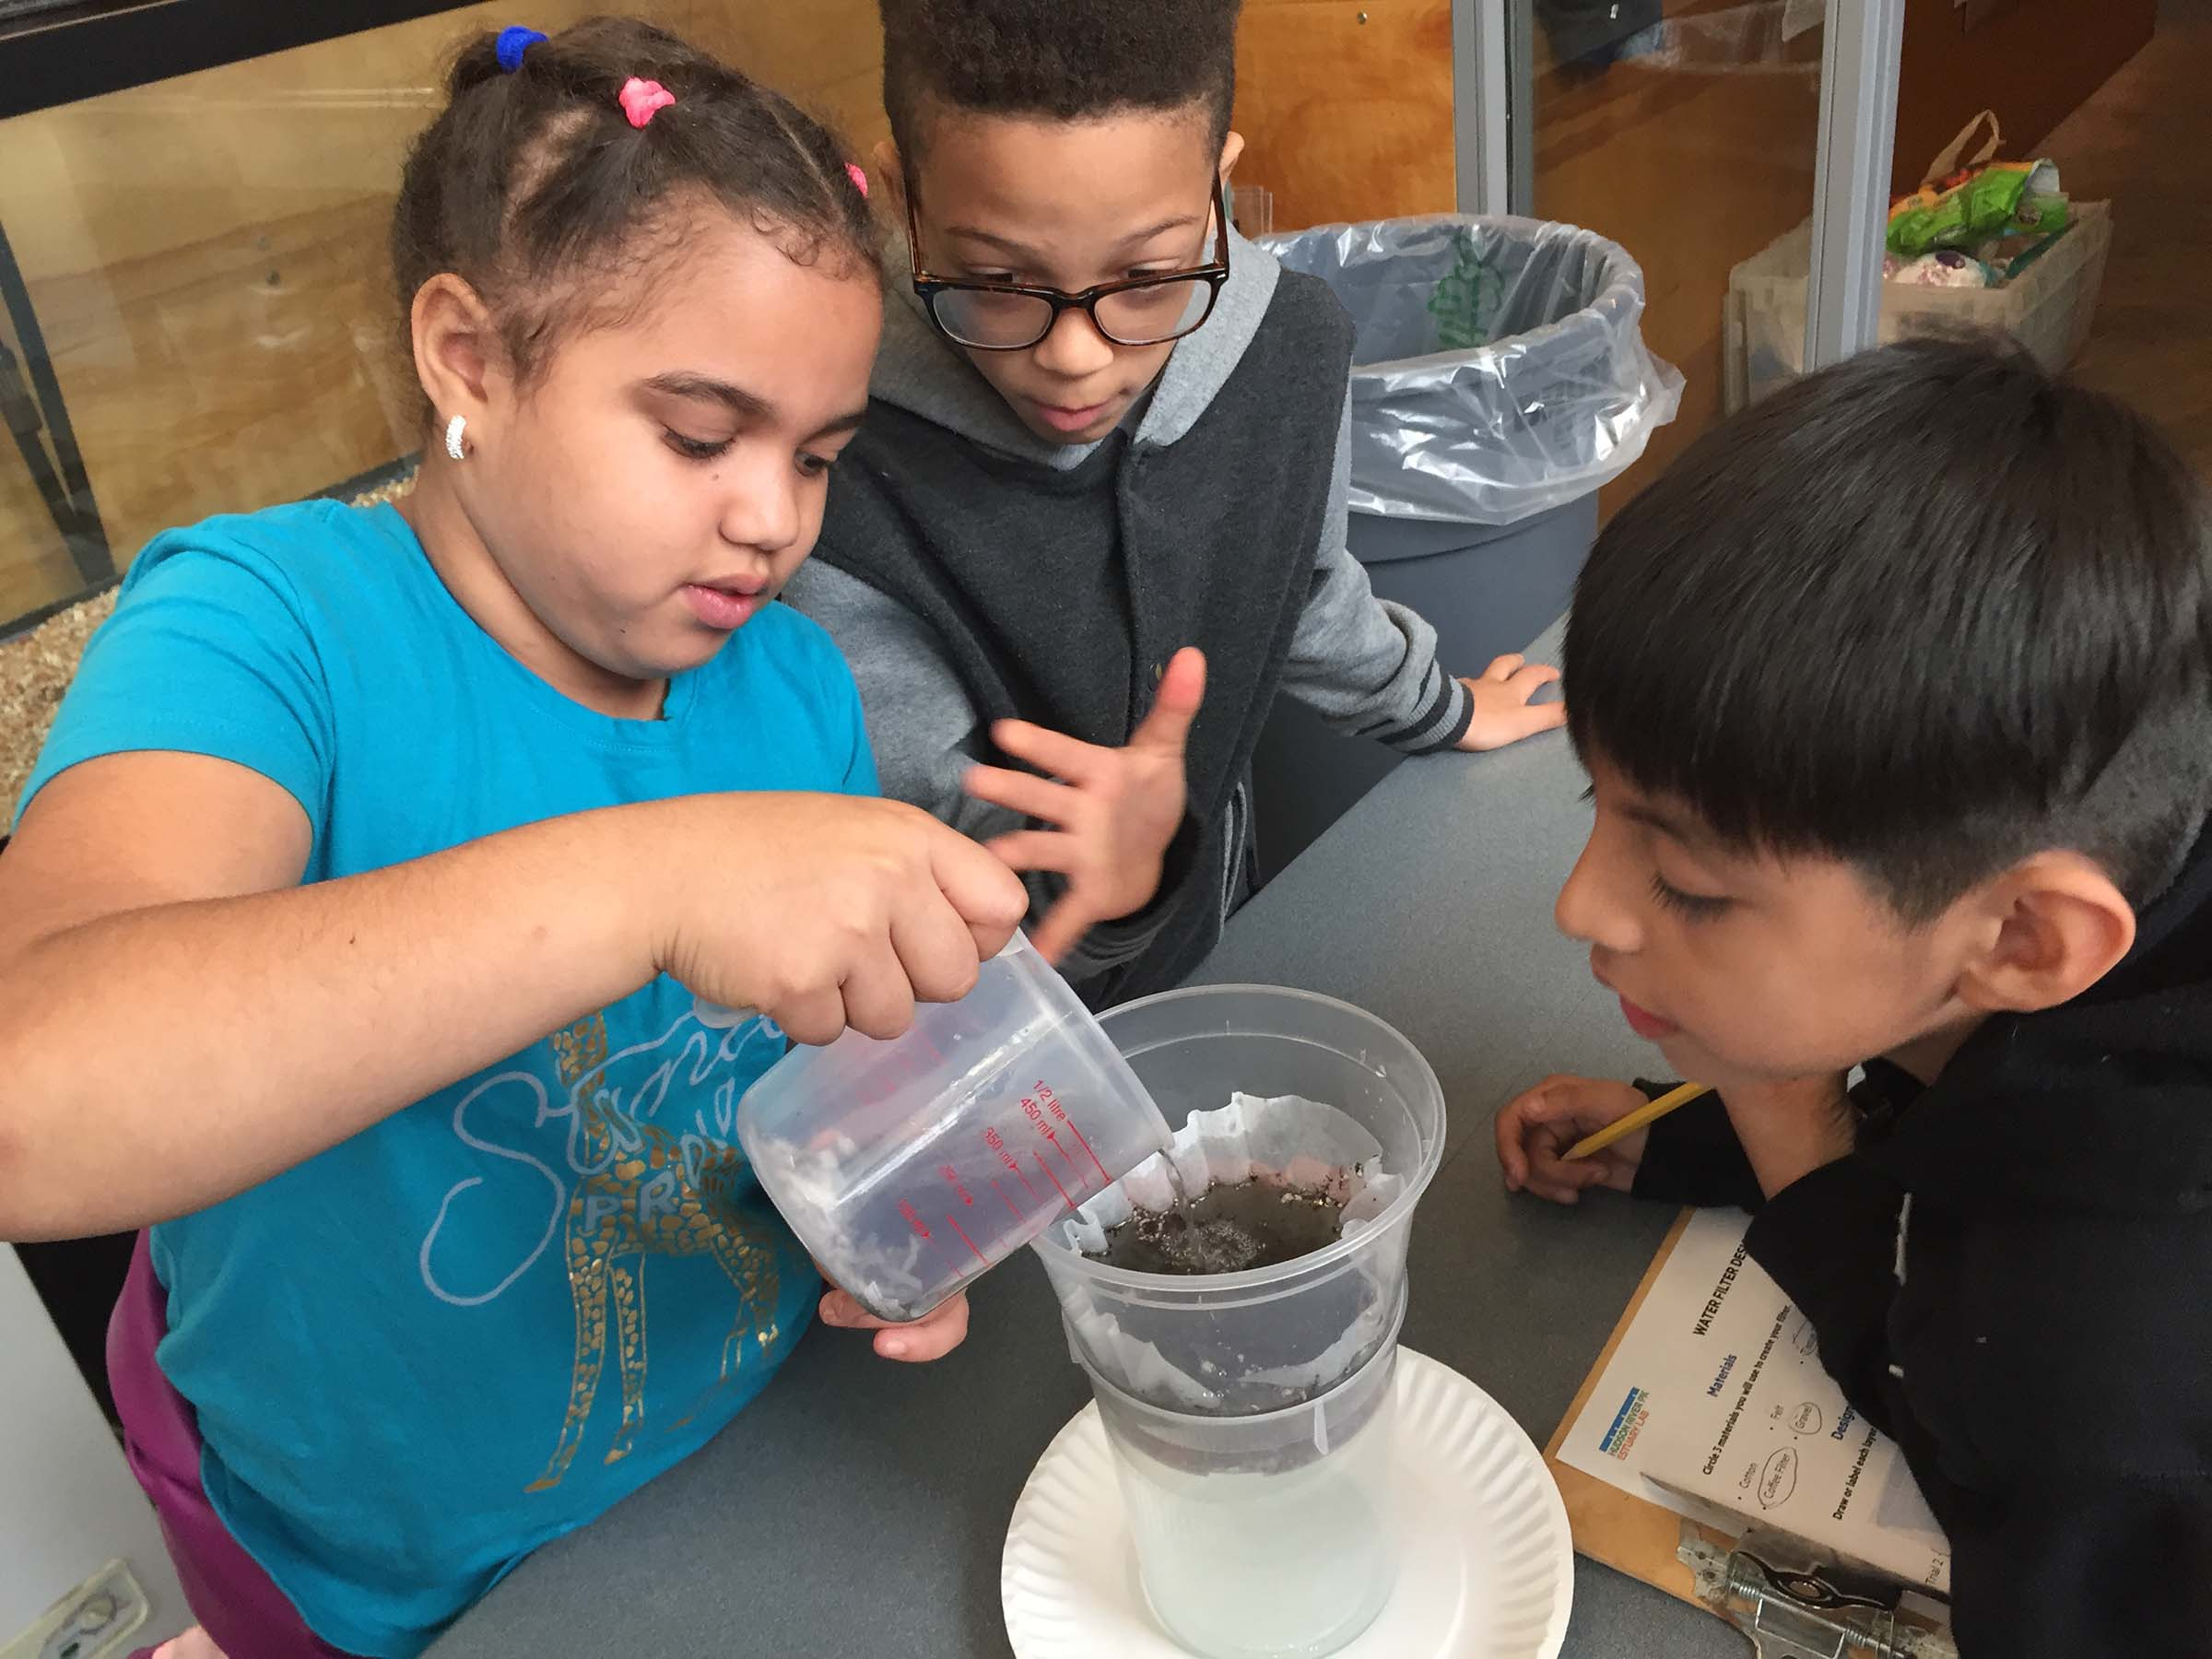 Students work on a project and pour water into a coffee filter with dirt